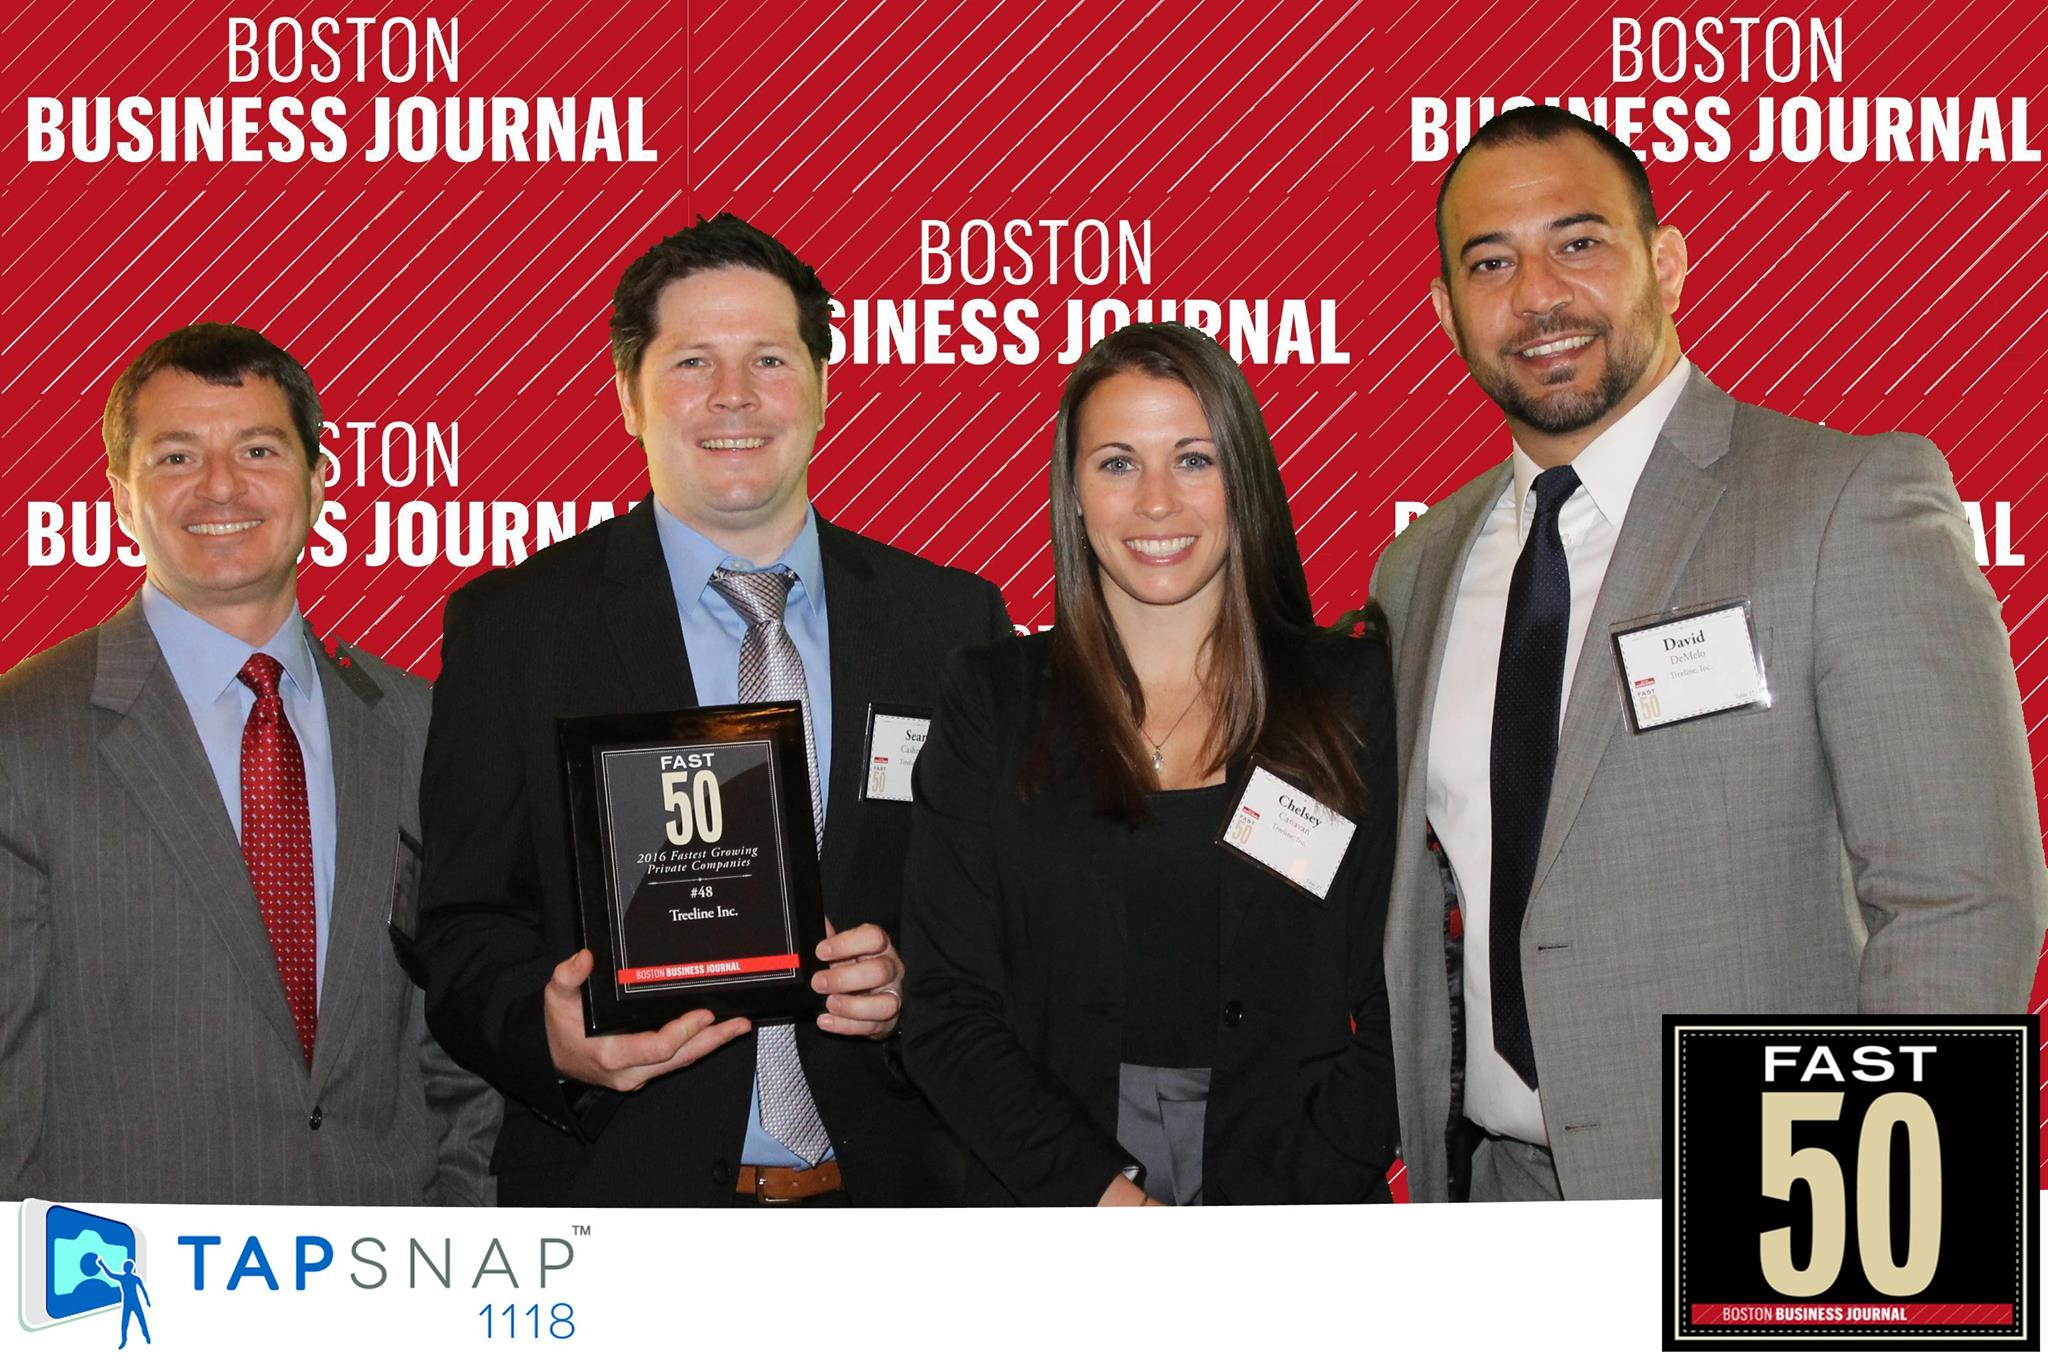 Treeline is recognized as the 48 fastest growing private company in MA by the Boston Business Journal